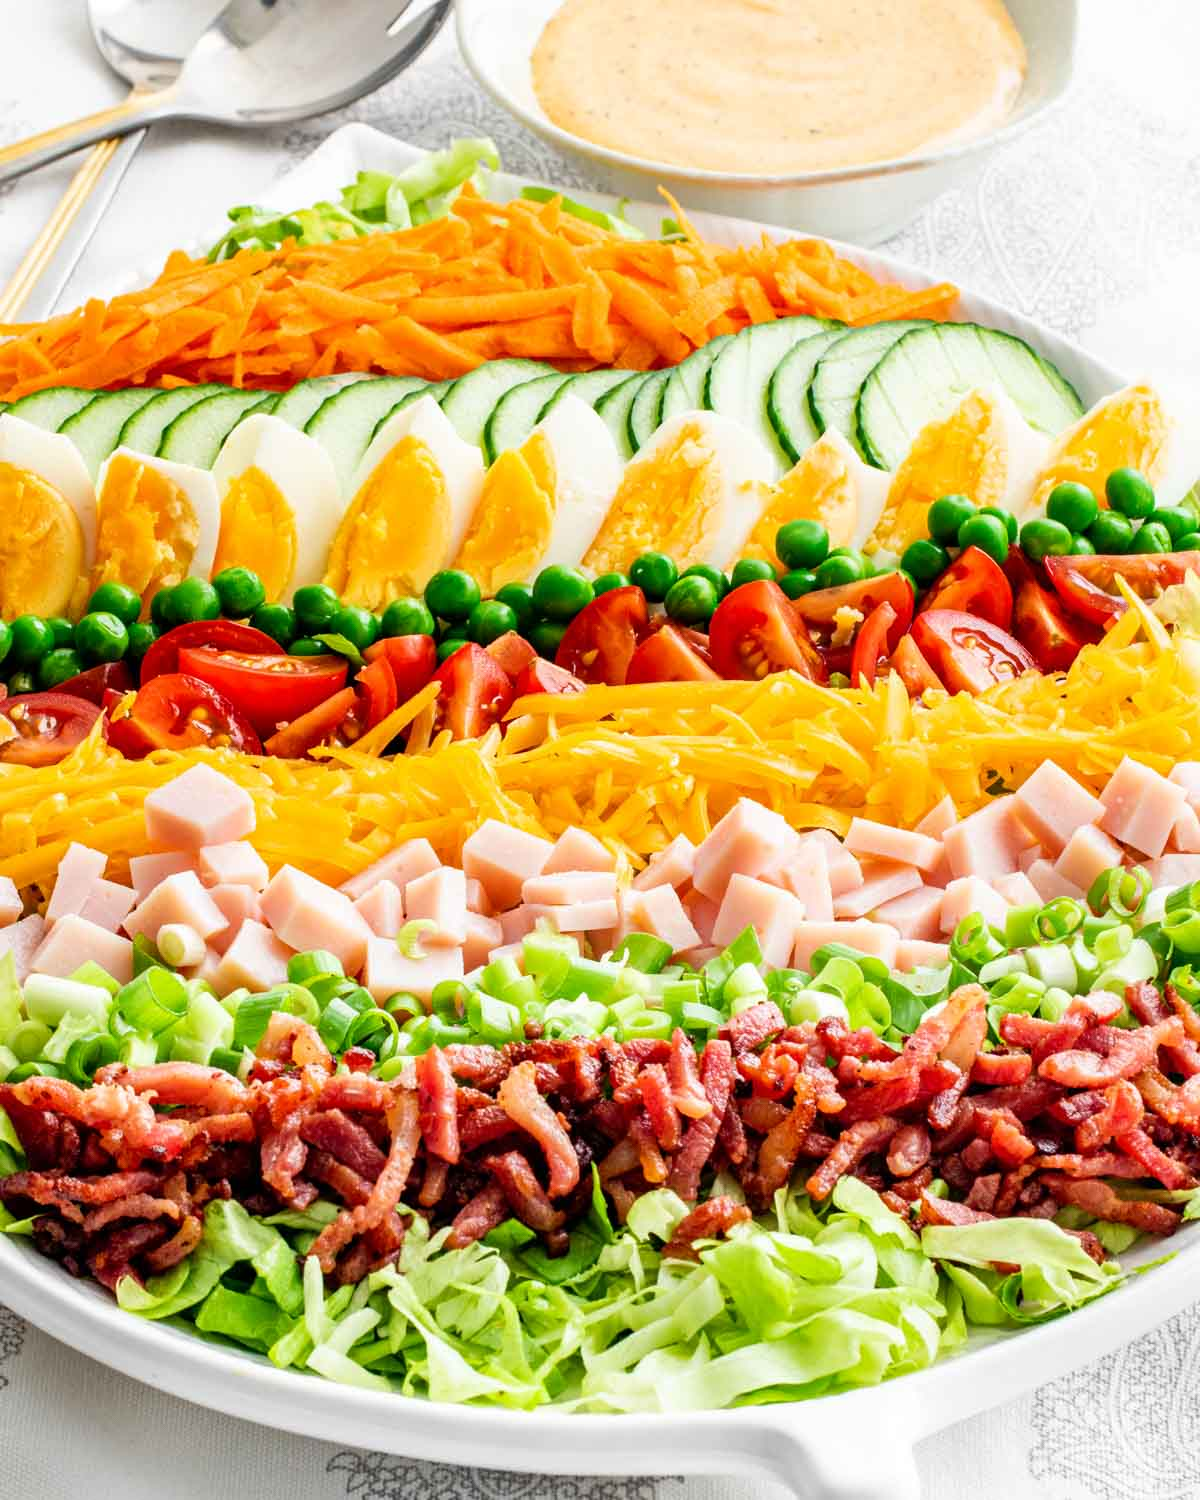 sideview shot of a layered chef salad in a white serving bowl